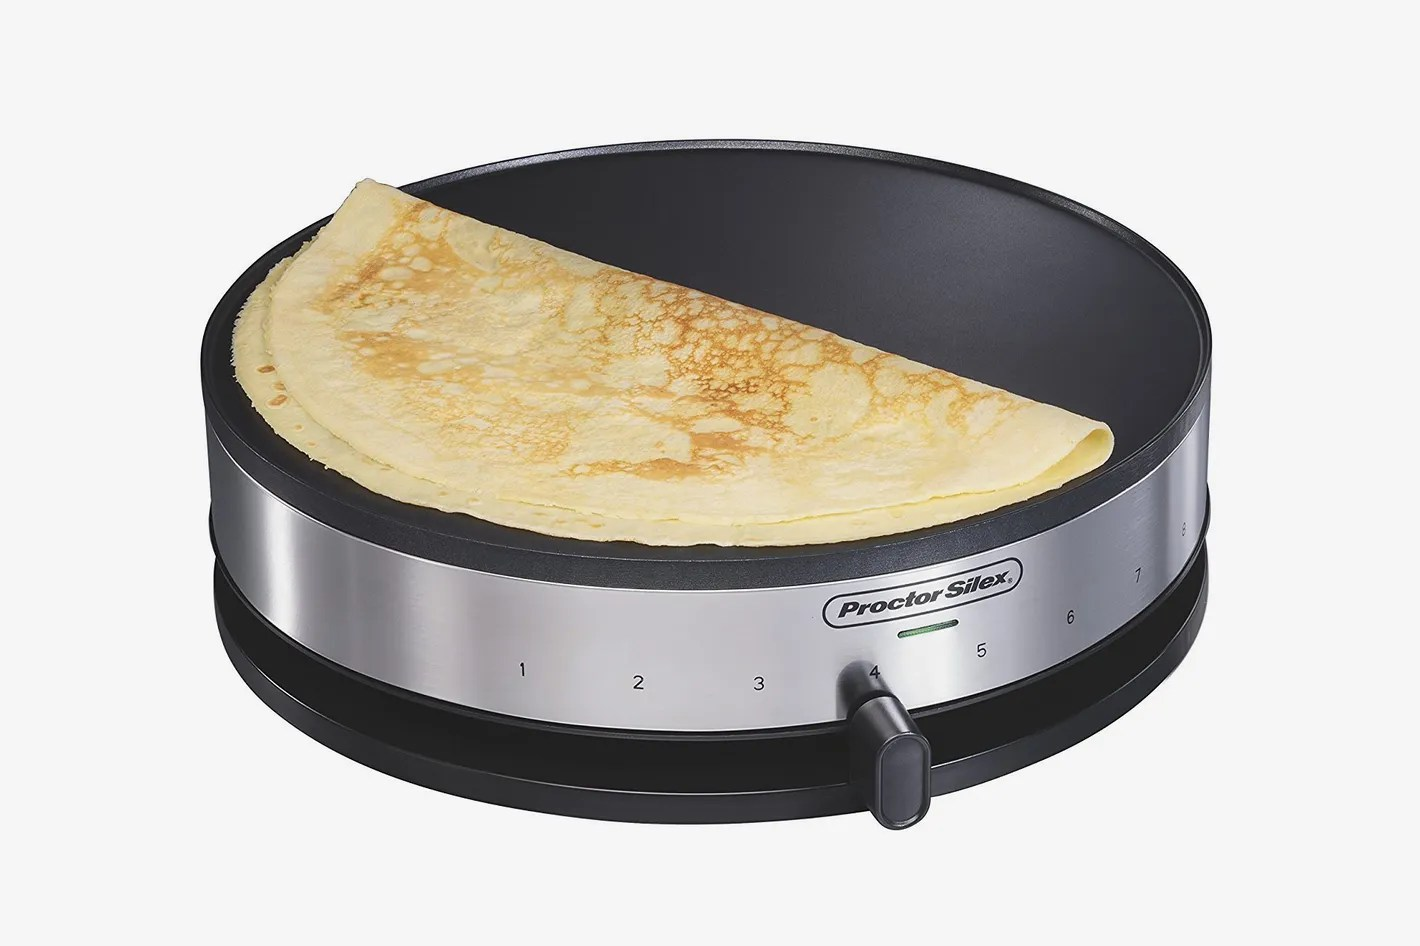 Crepe Party Lagrange Proctor Silex 38400 Electric Crepe Maker 13 Inch Griddle Spatula